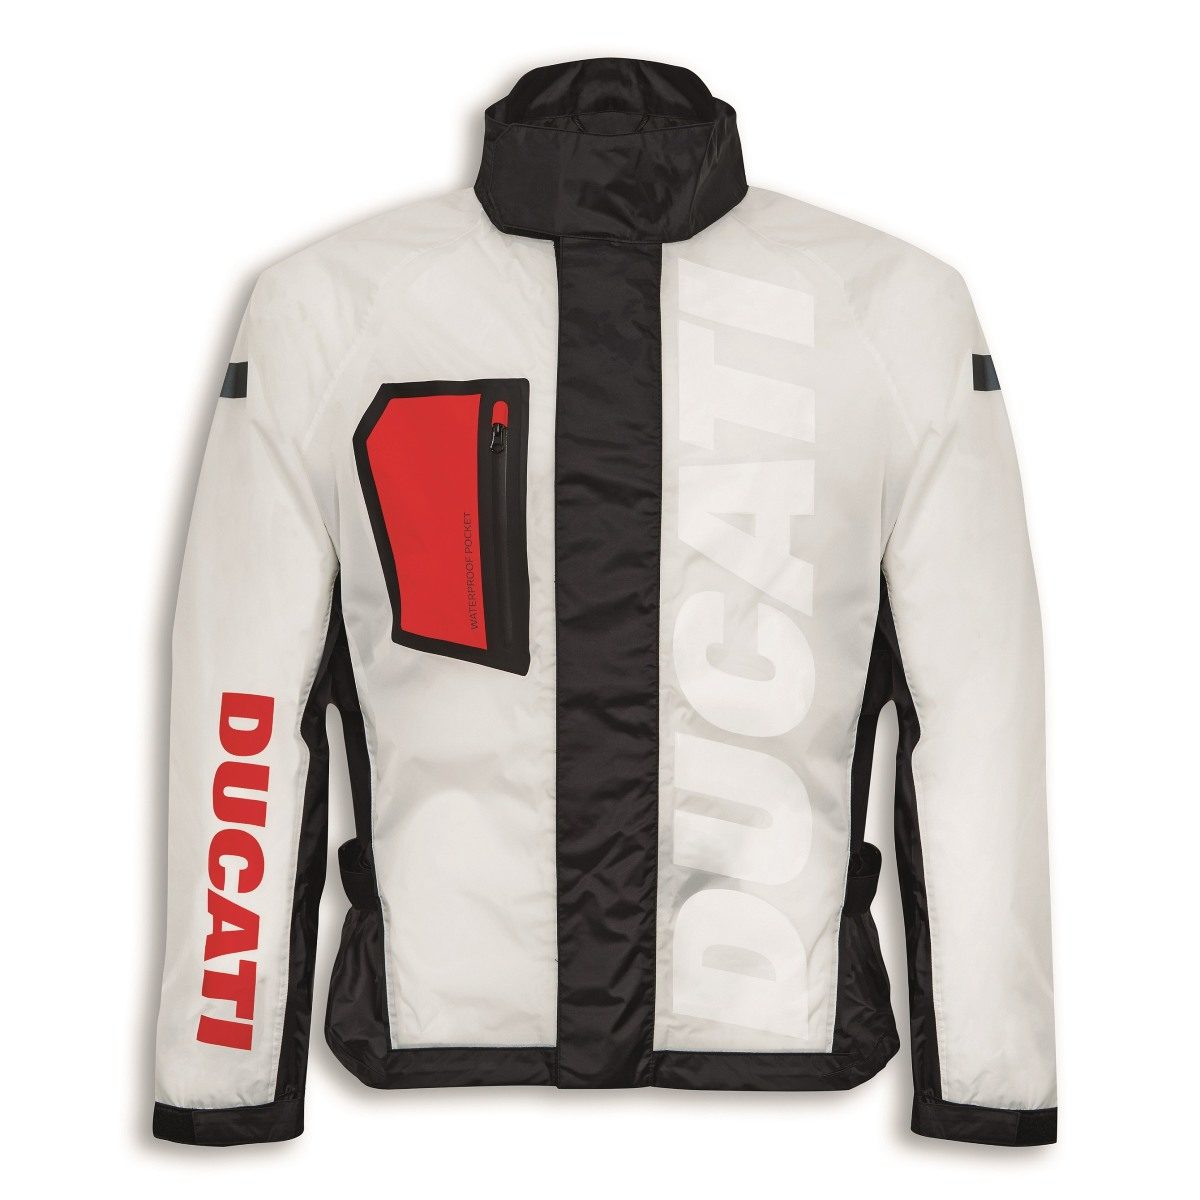 Ducati official riding gear (1)